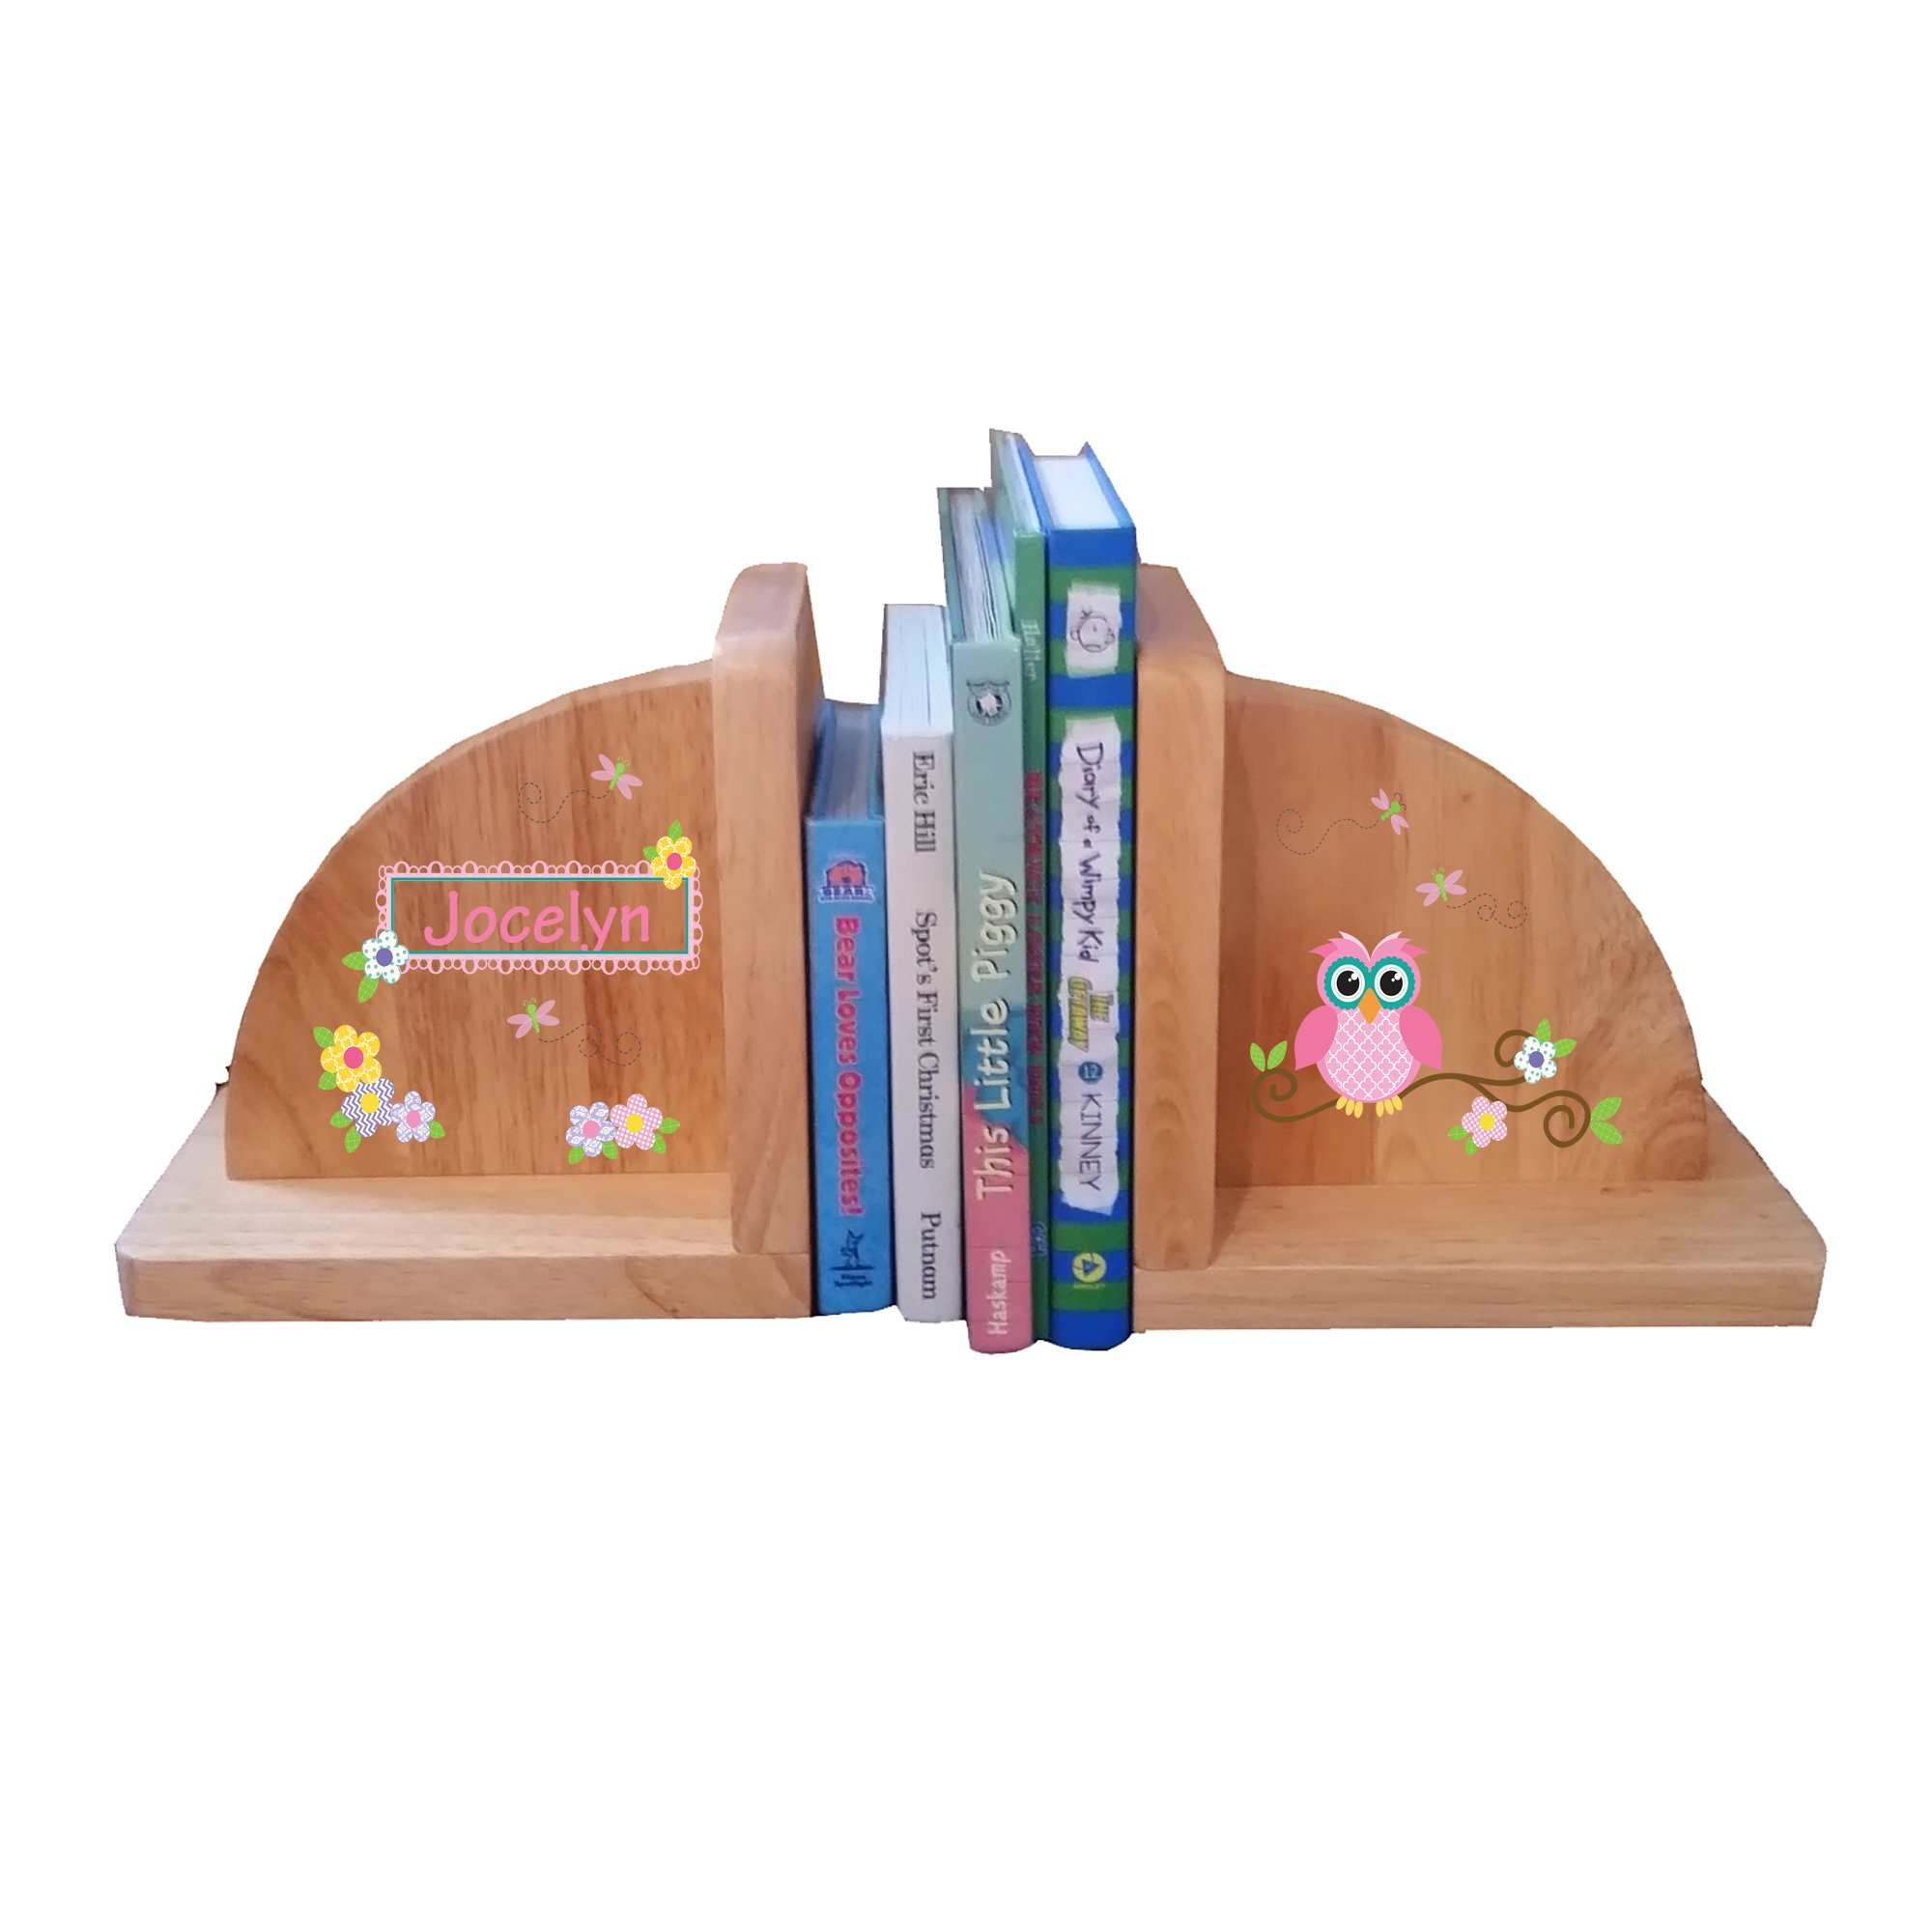 Personalized Calico Owl Natural Childrens Wooden Bookends